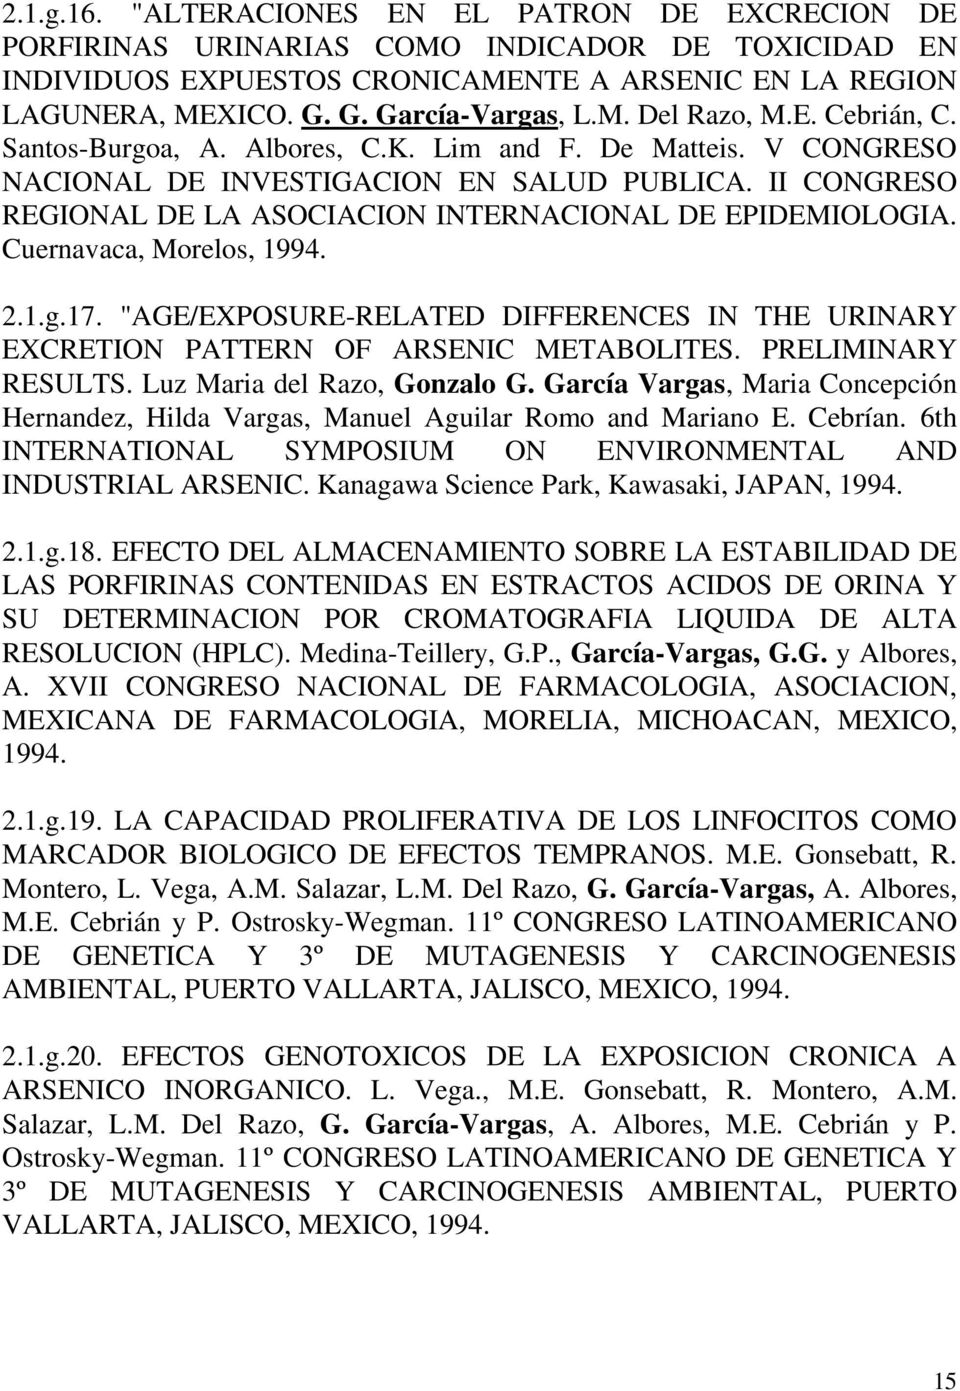 "II CONGRESO REGIONAL DE LA ASOCIACION INTERNACIONAL DE EPIDEMIOLOGIA. Cuernavaca, Morelos, 1994. 2.1.g.17. ""AGE/EXPOSURE-RELATED DIFFERENCES IN THE URINARY EXCRETION PATTERN OF ARSENIC METABOLITES."